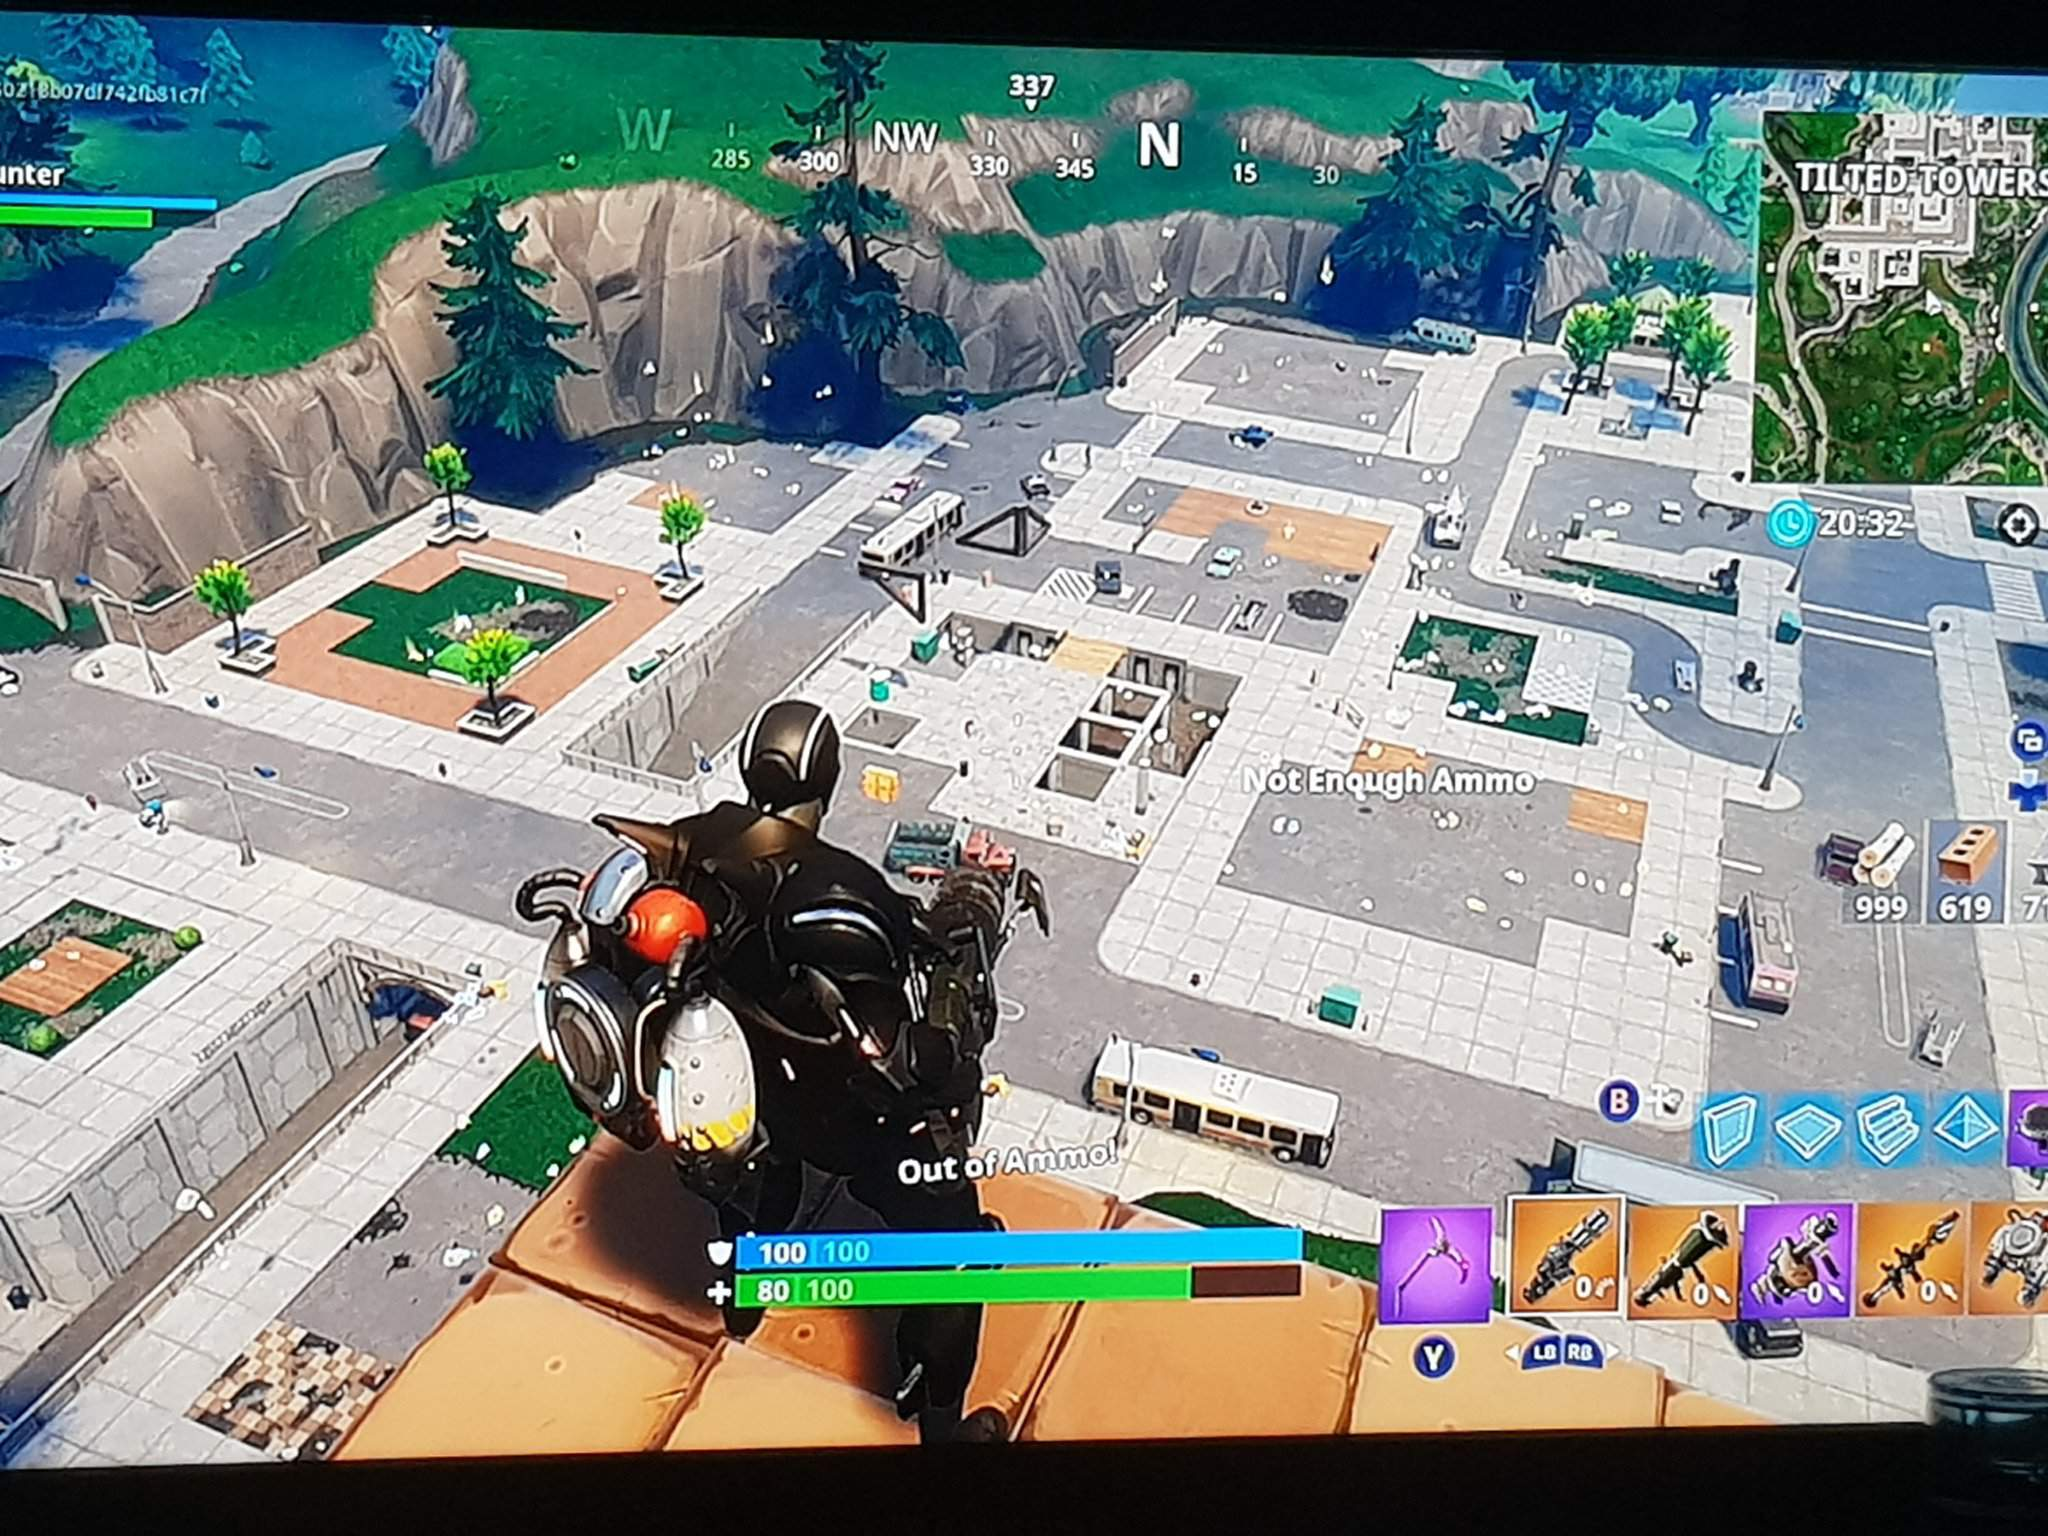 Fortnite Restores Tilted Towers Tilted Towers Eliminated Fortnite Battle Royale Armory Amino